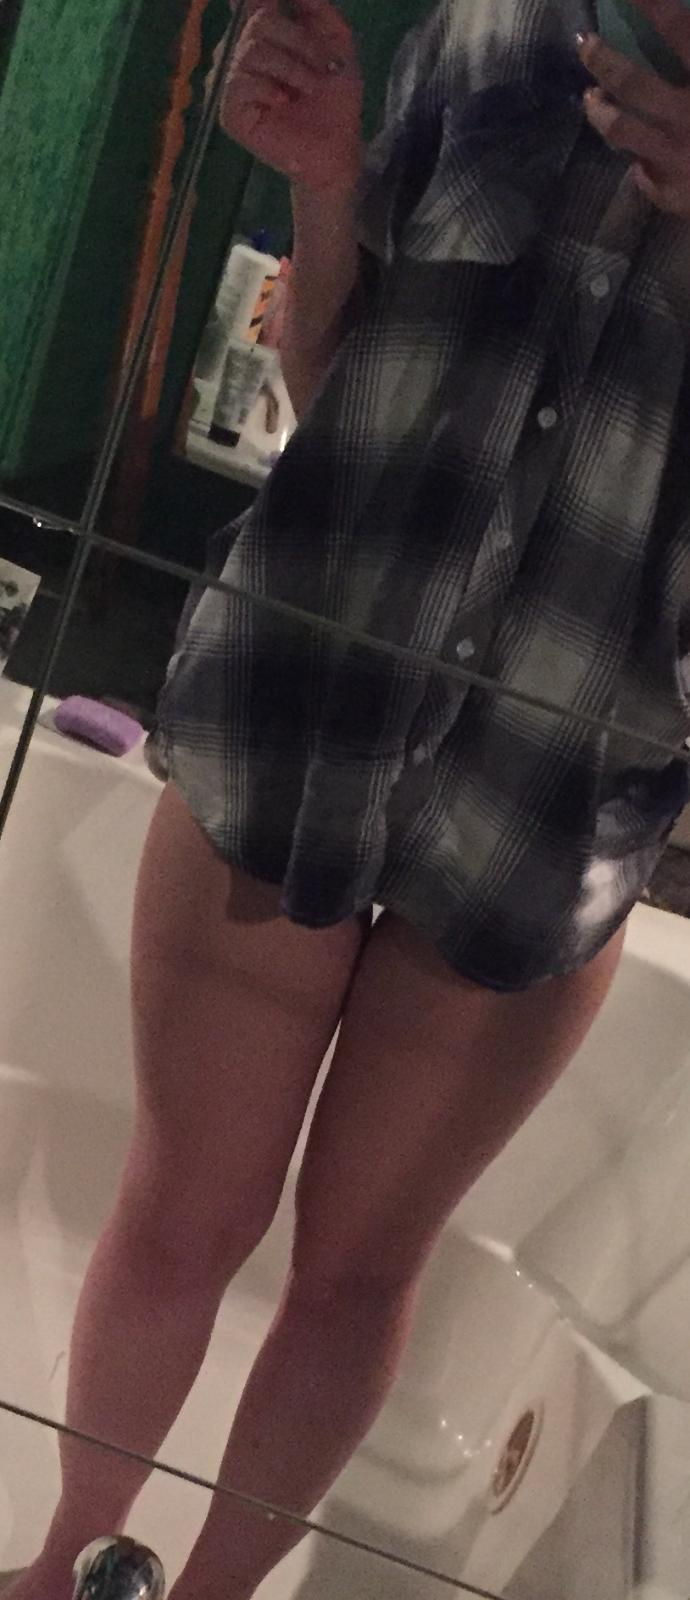 Rate my legs?  Are they fat or something?